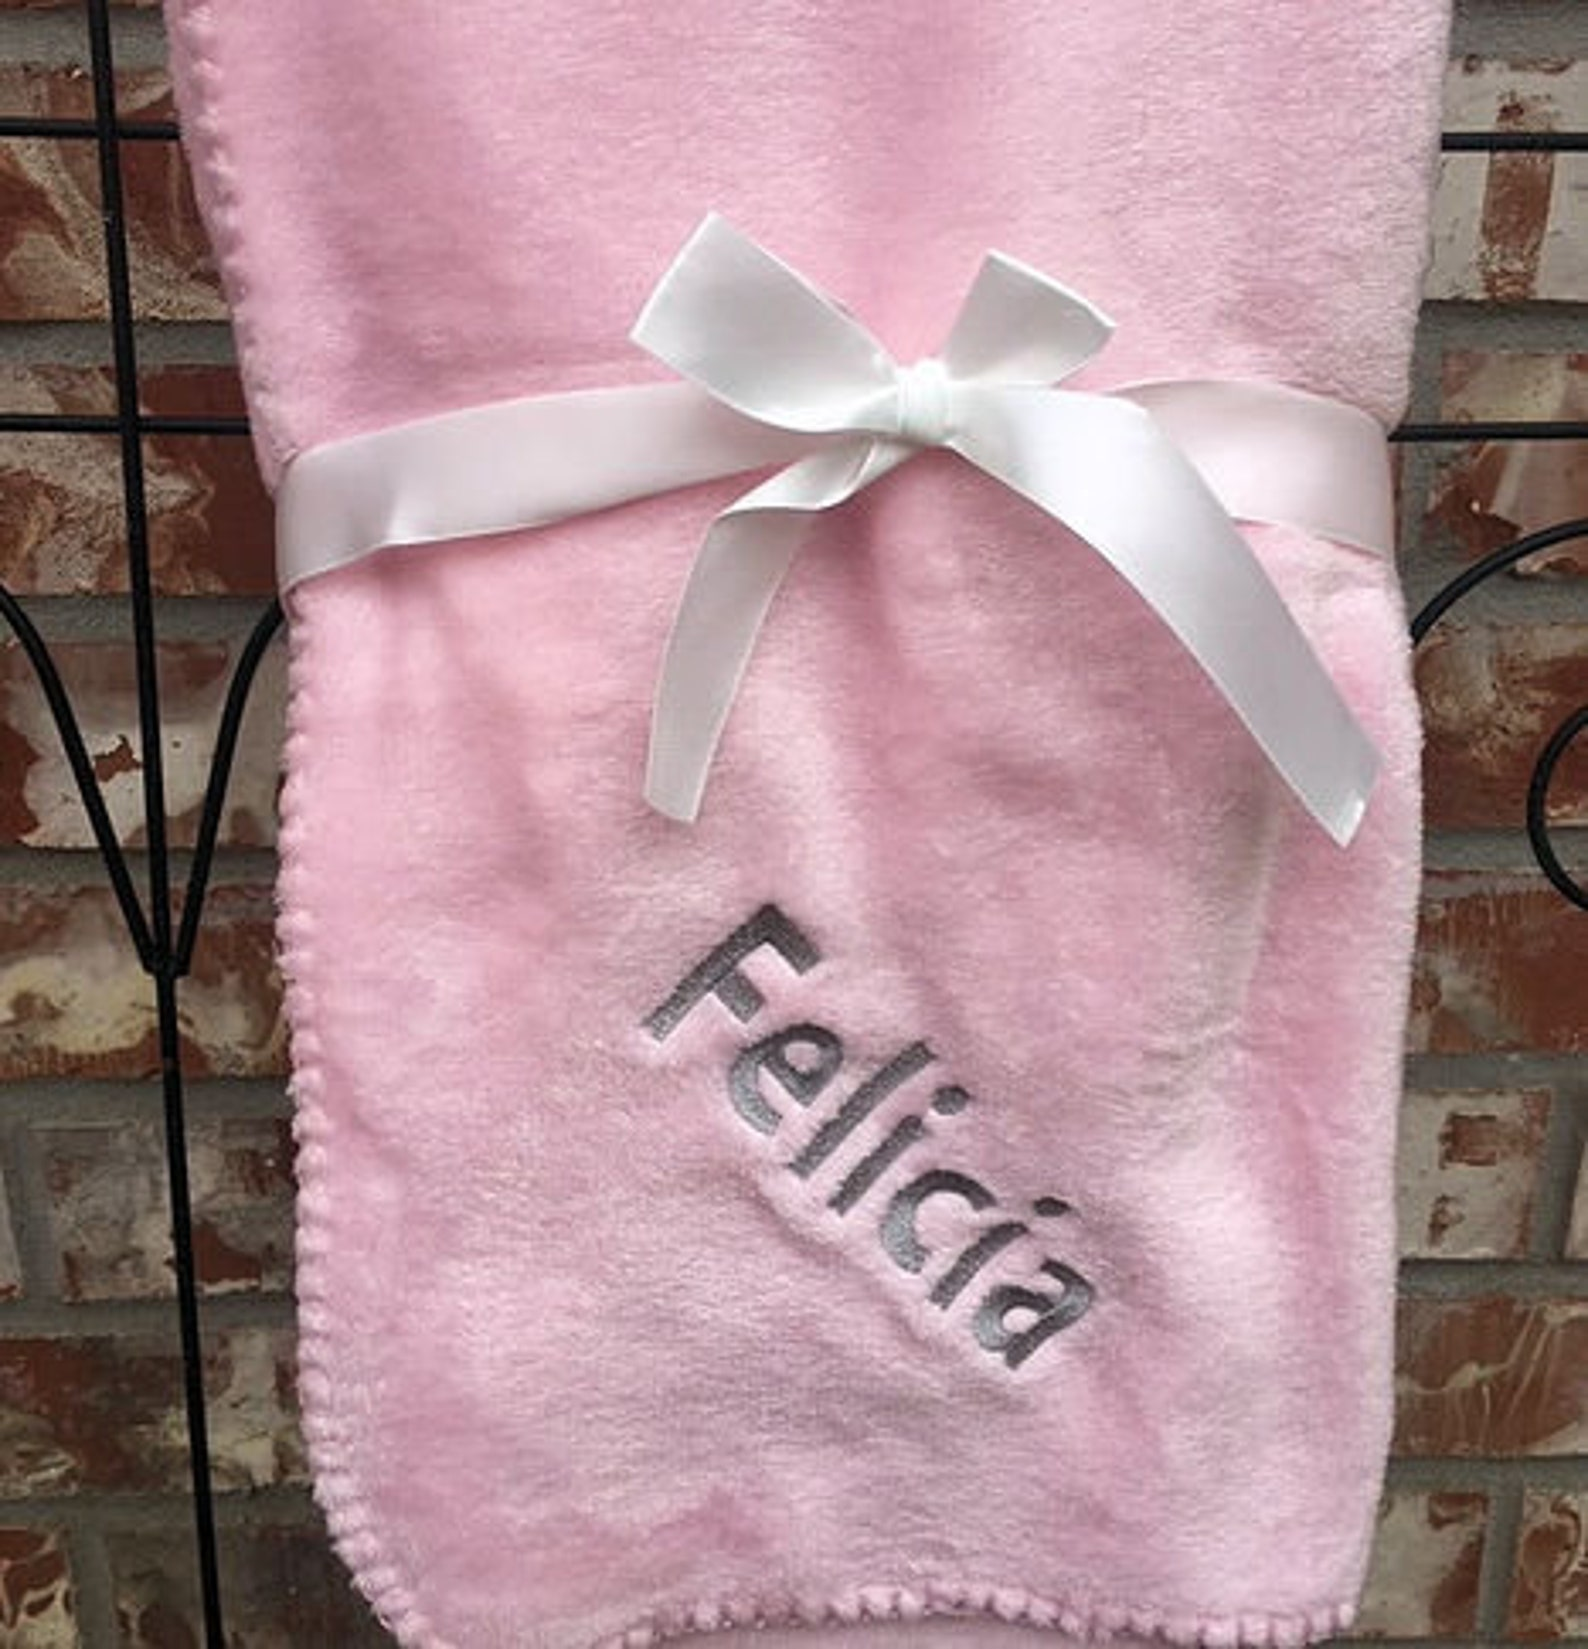 soft pink let's dance baby blanket with pink ballet shoes personalized monogram embroidery